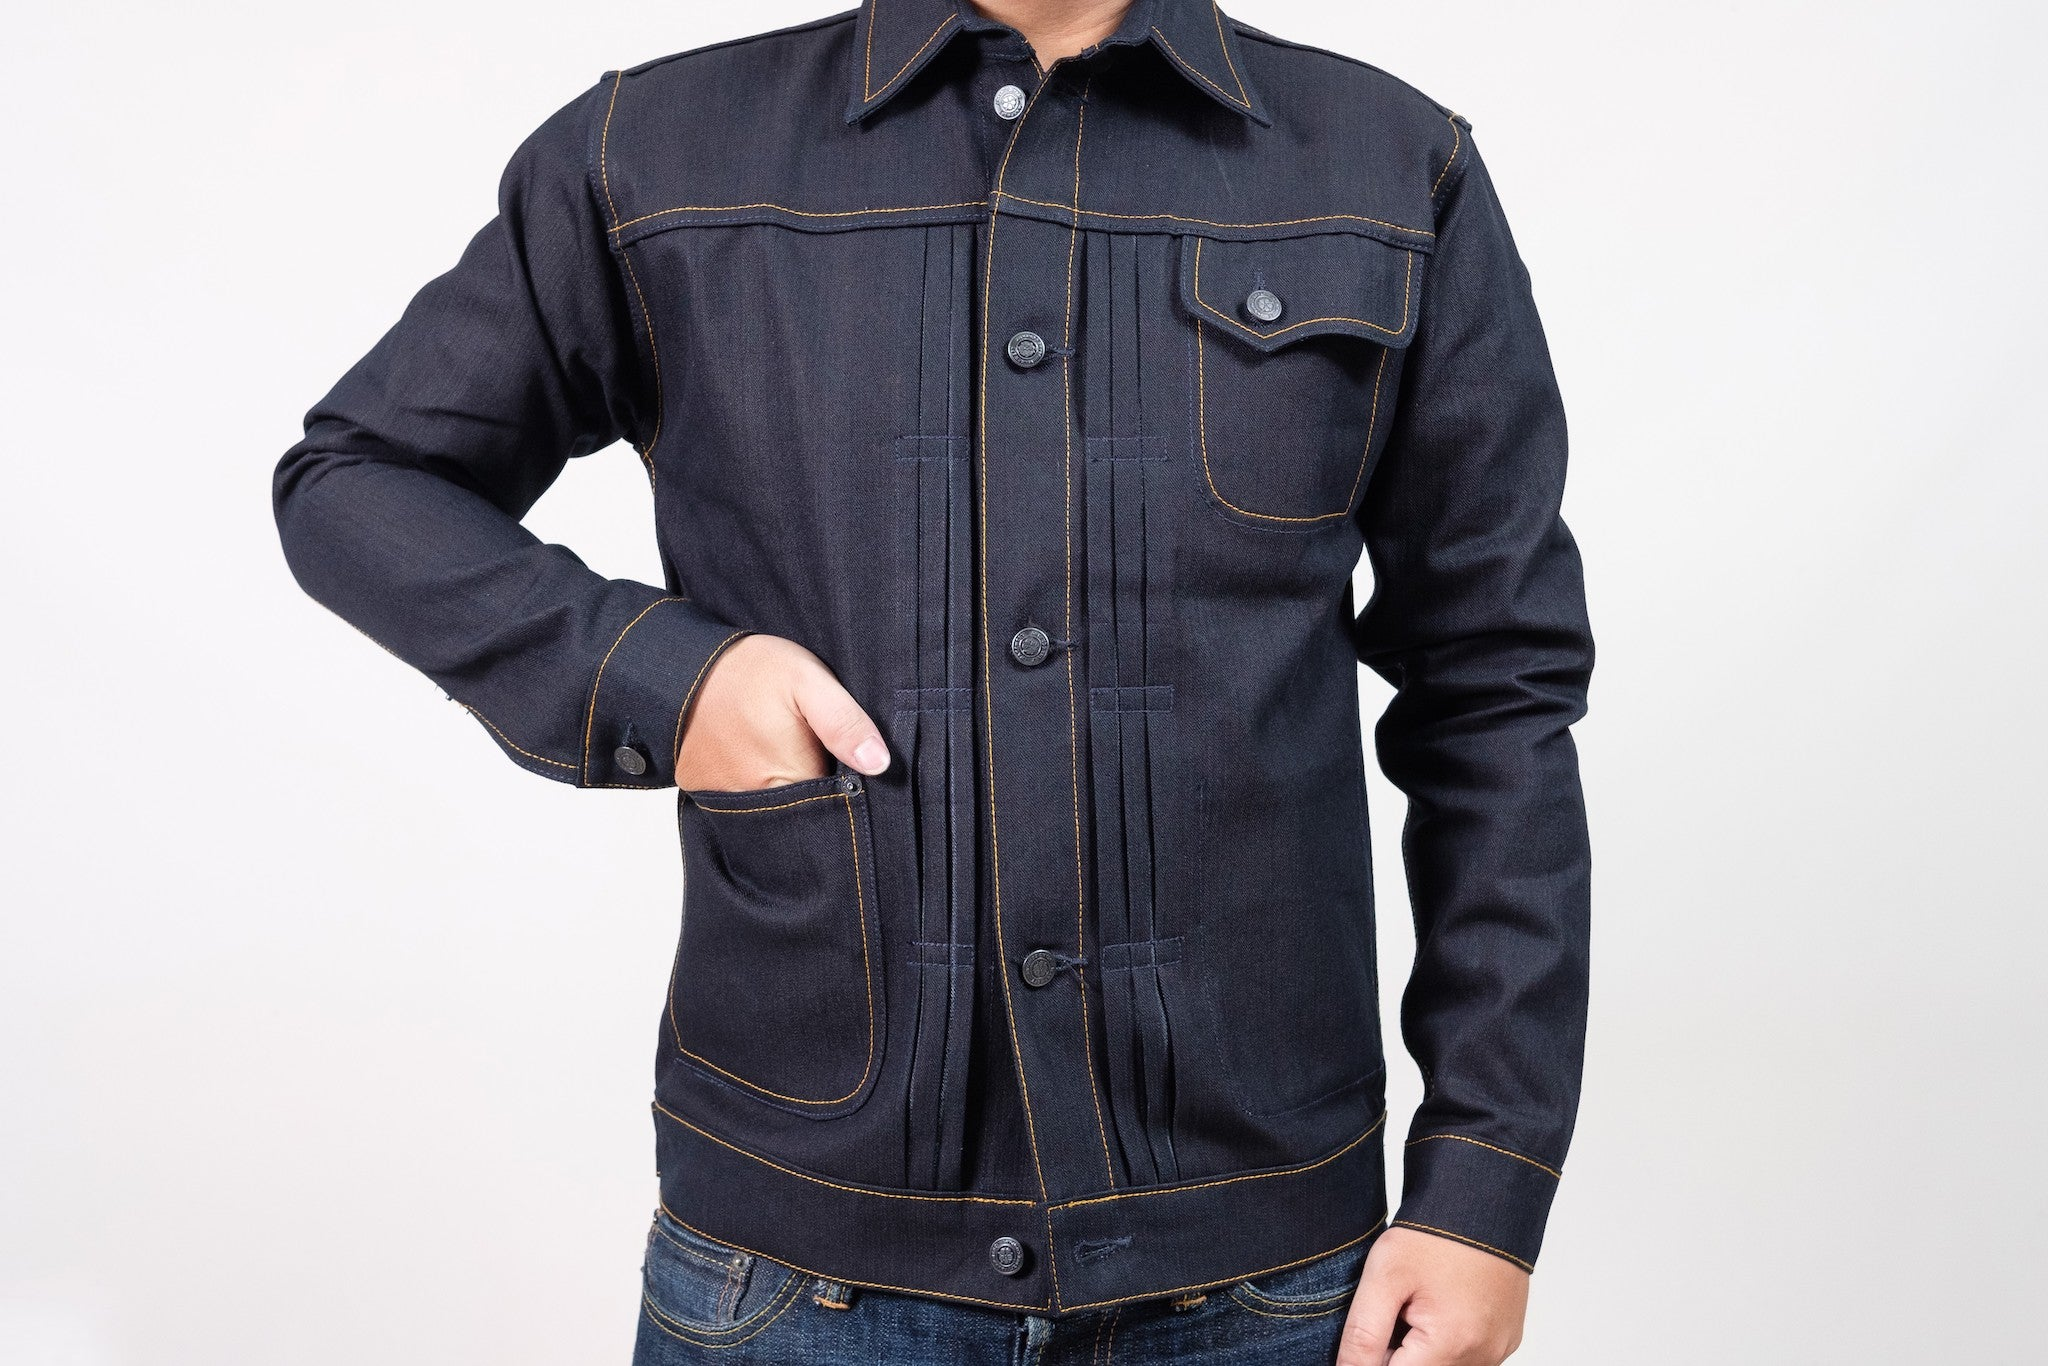 JACKET N°1 - INDIGO/BLACK